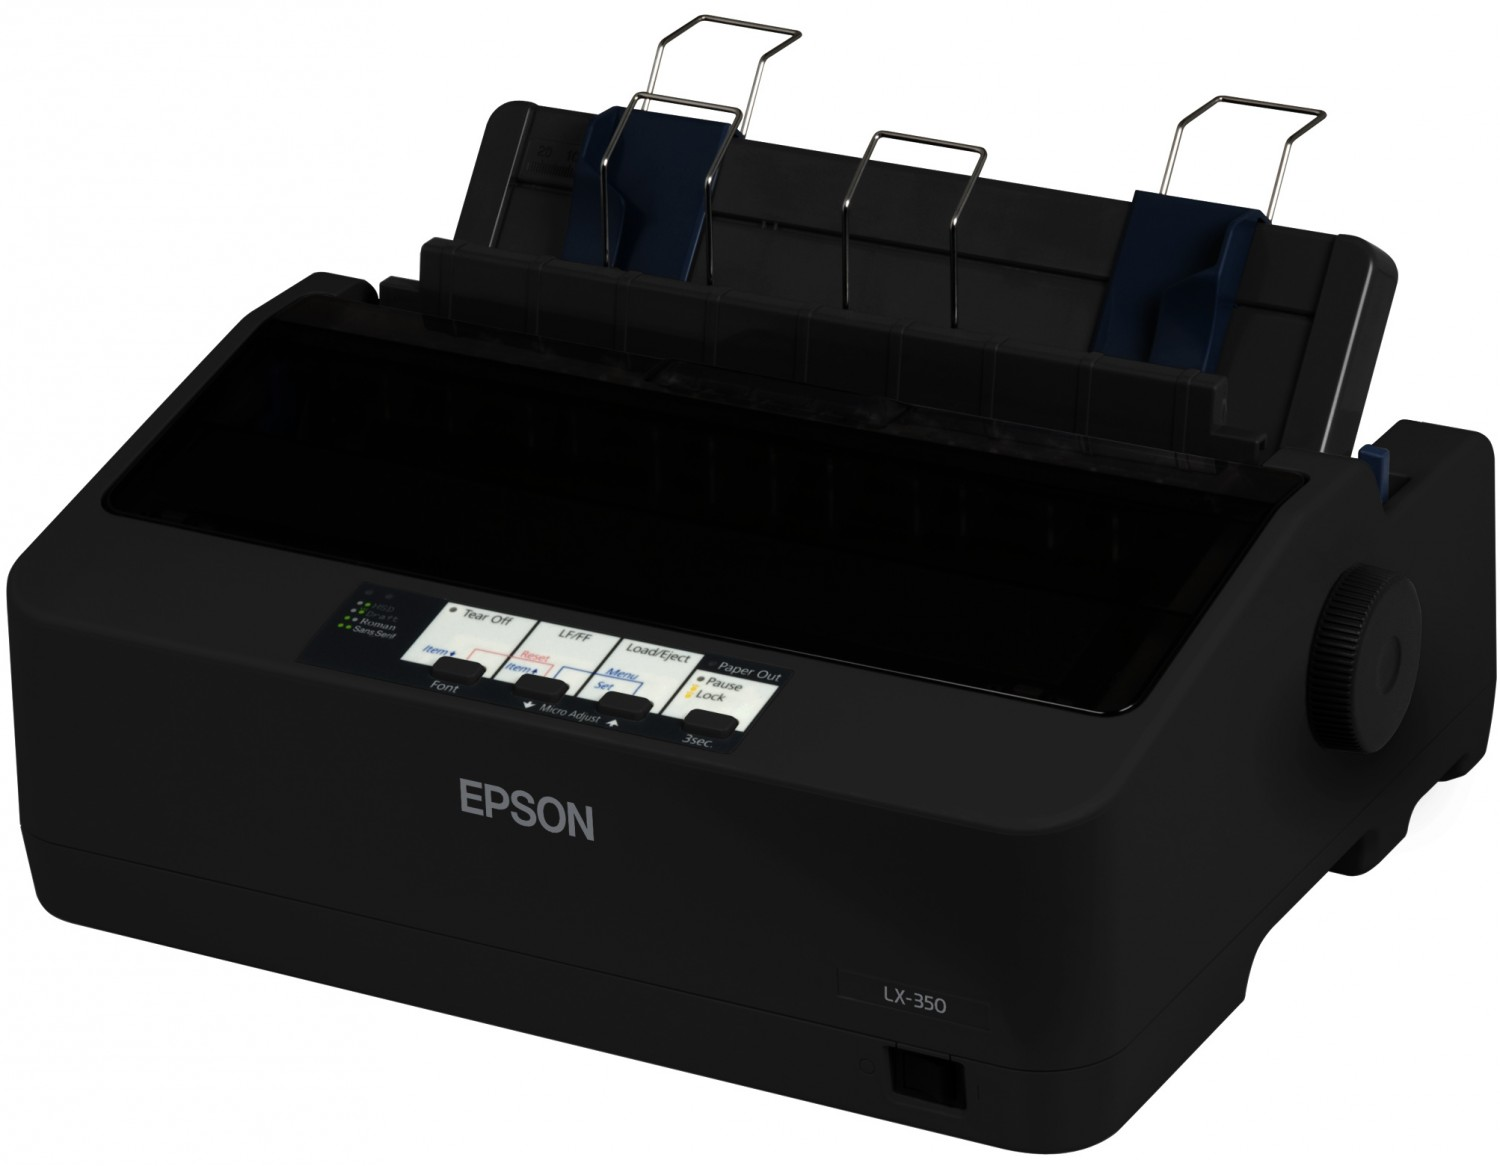 epson LX 350 driver for x32